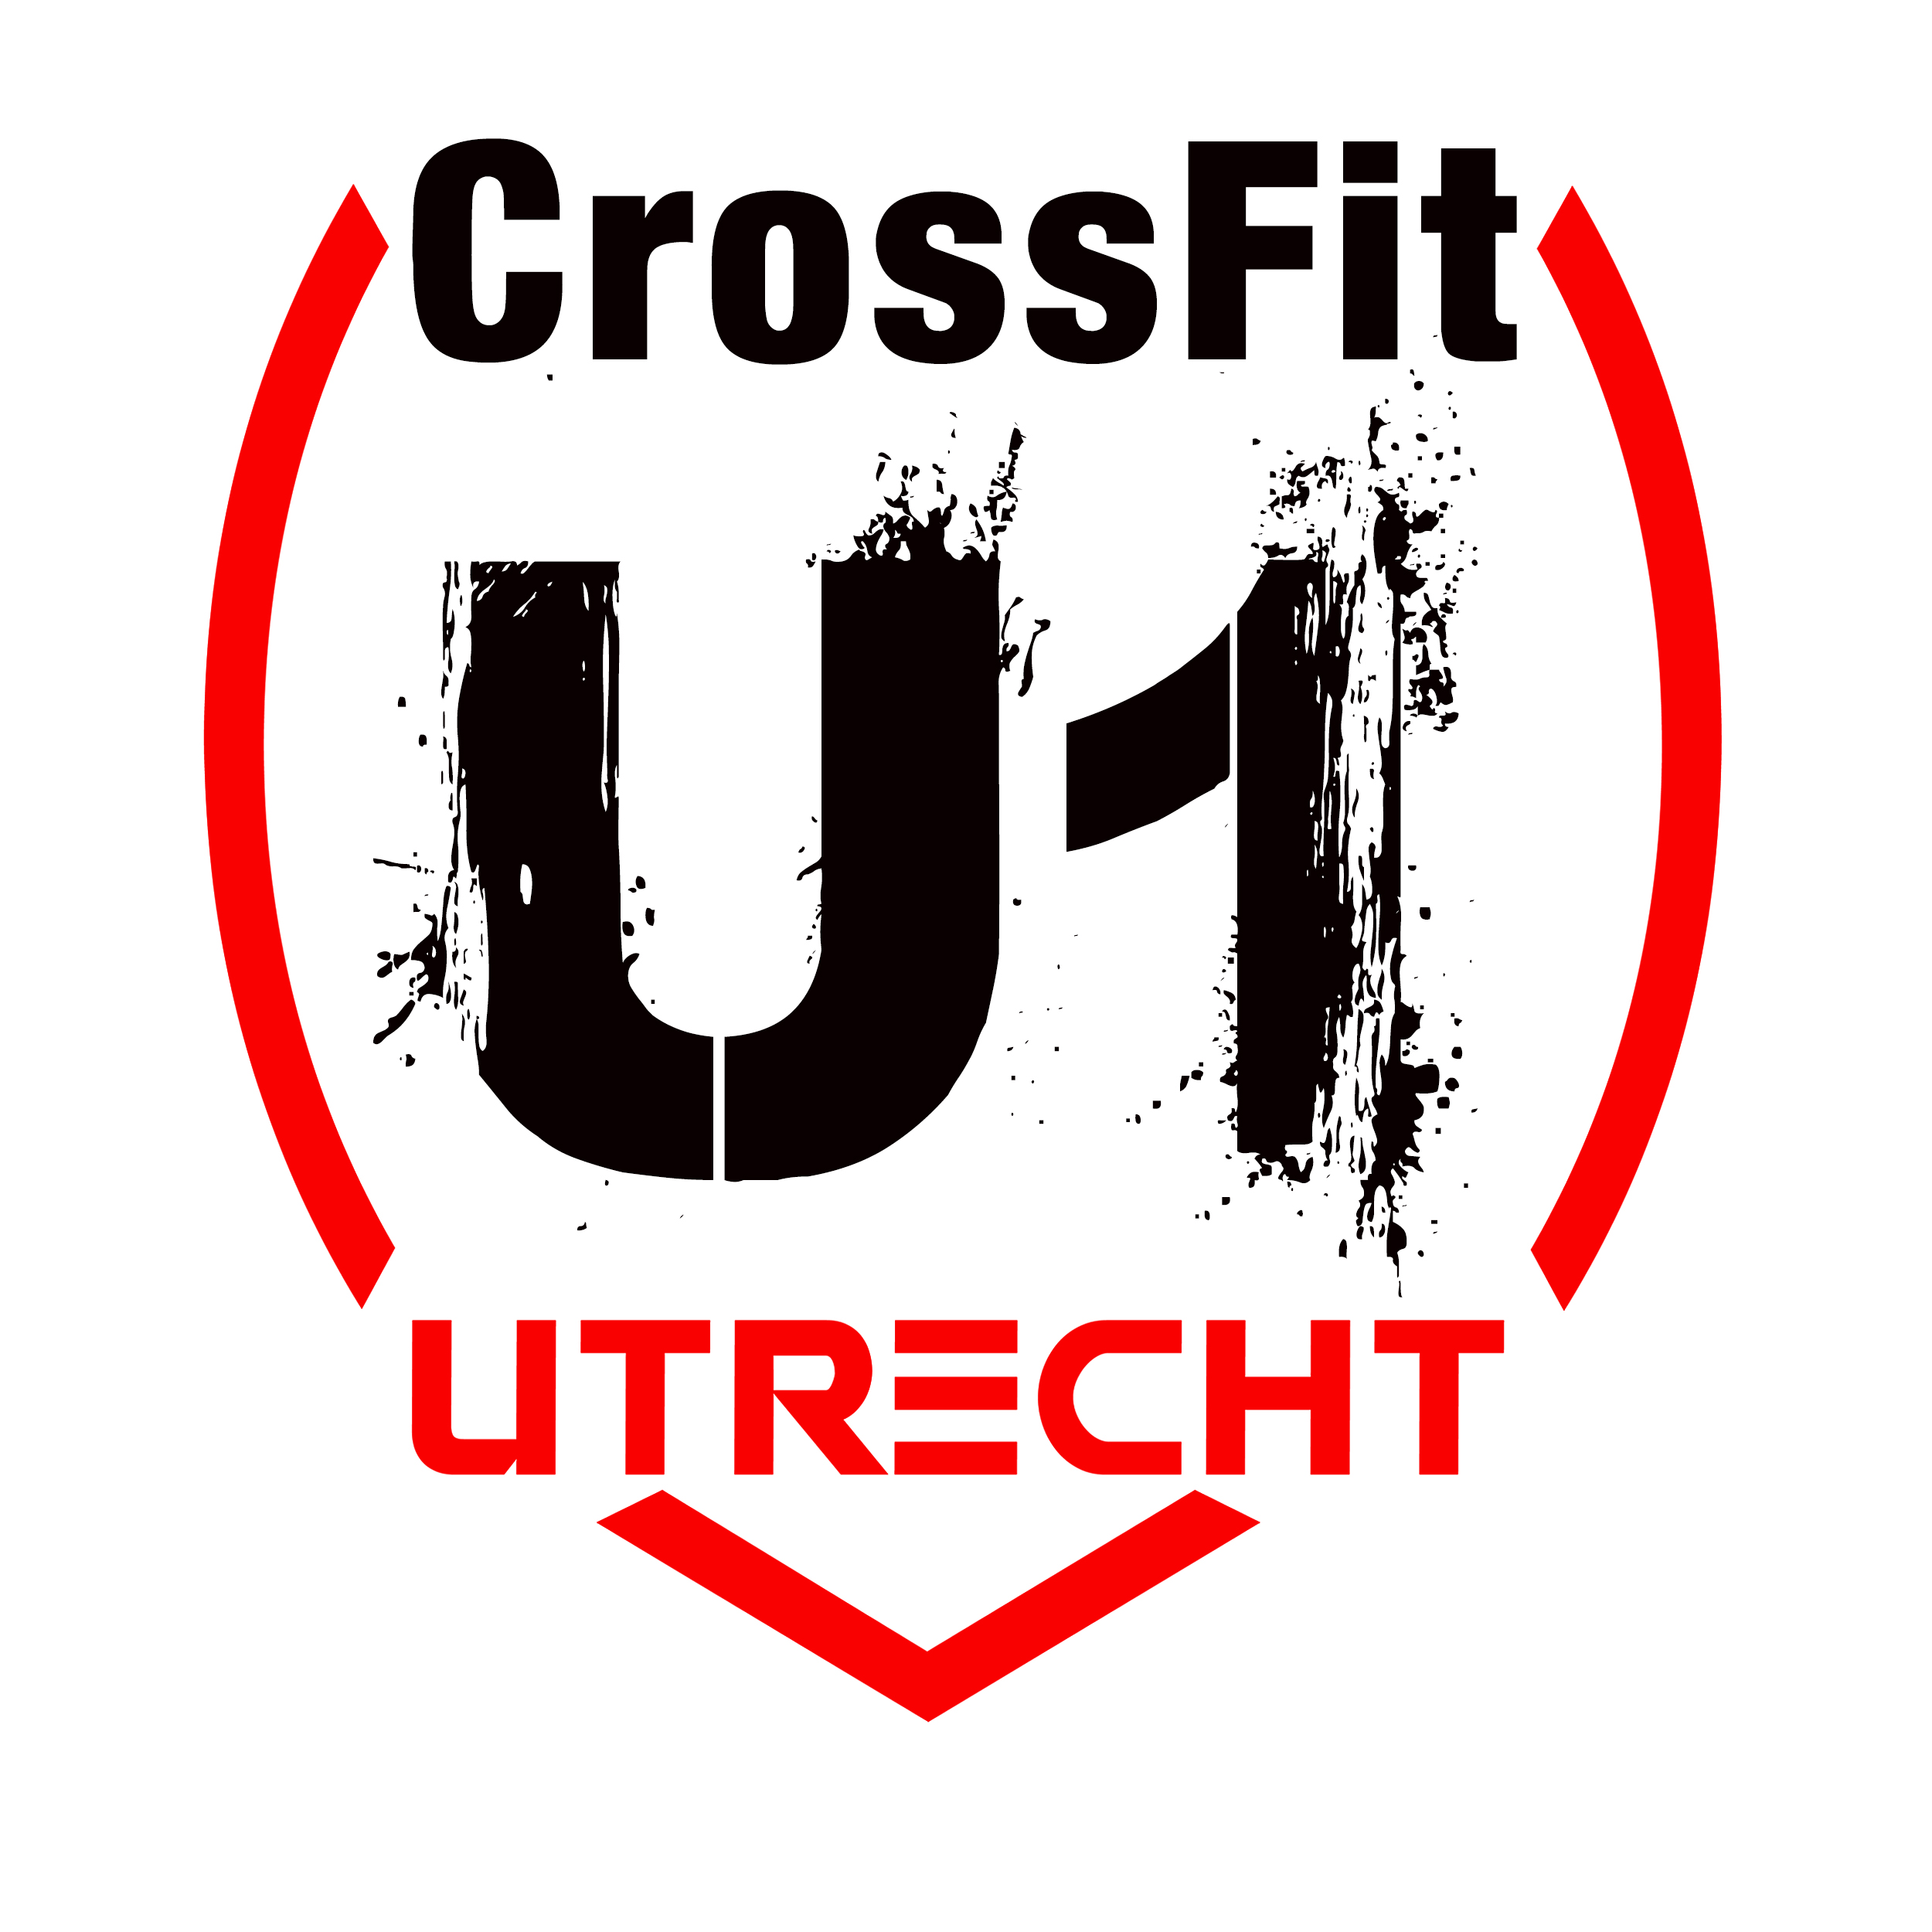 CrossFit U1 making Utrecht fitter